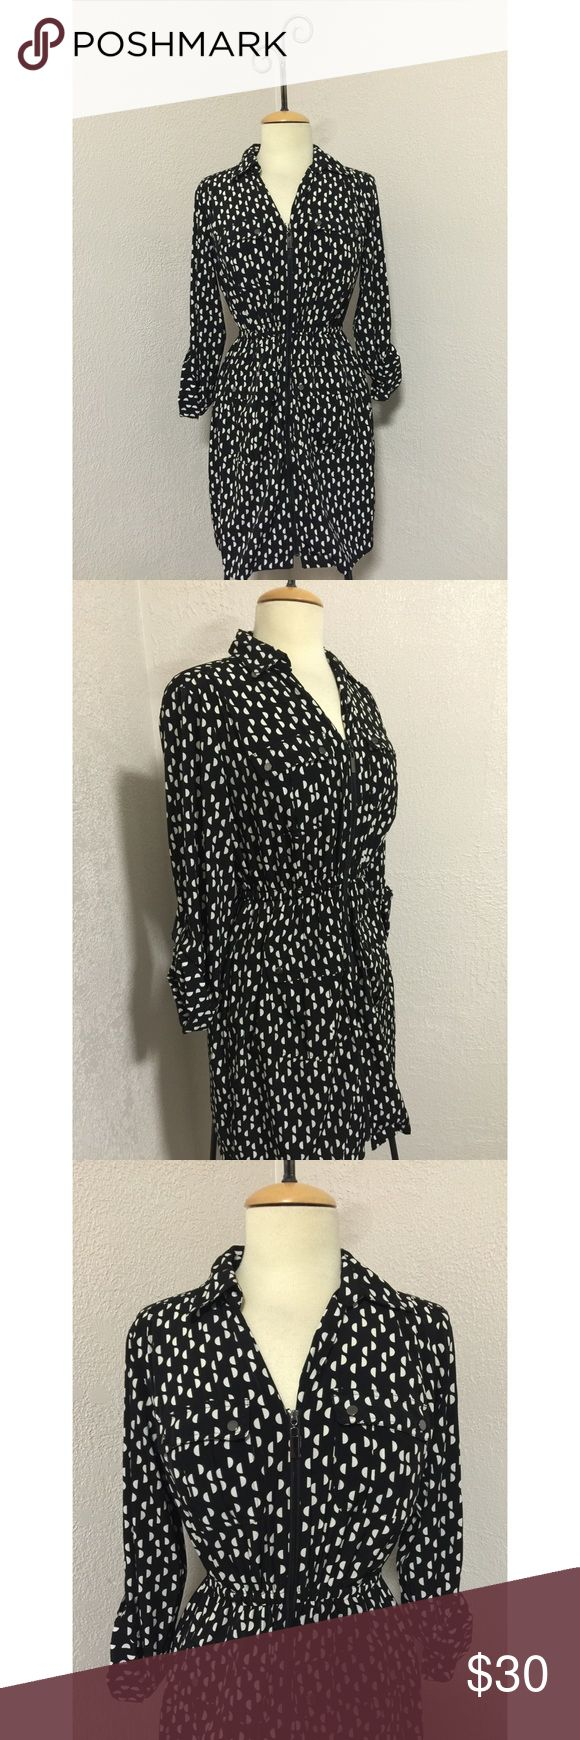 NWOT Black/White ALFANI polka dot dress size 4 New with out tags! Never worn in great condition! Black and white polka dot zip up dress by Alfani in a size 4 Alfani Dresses Midi